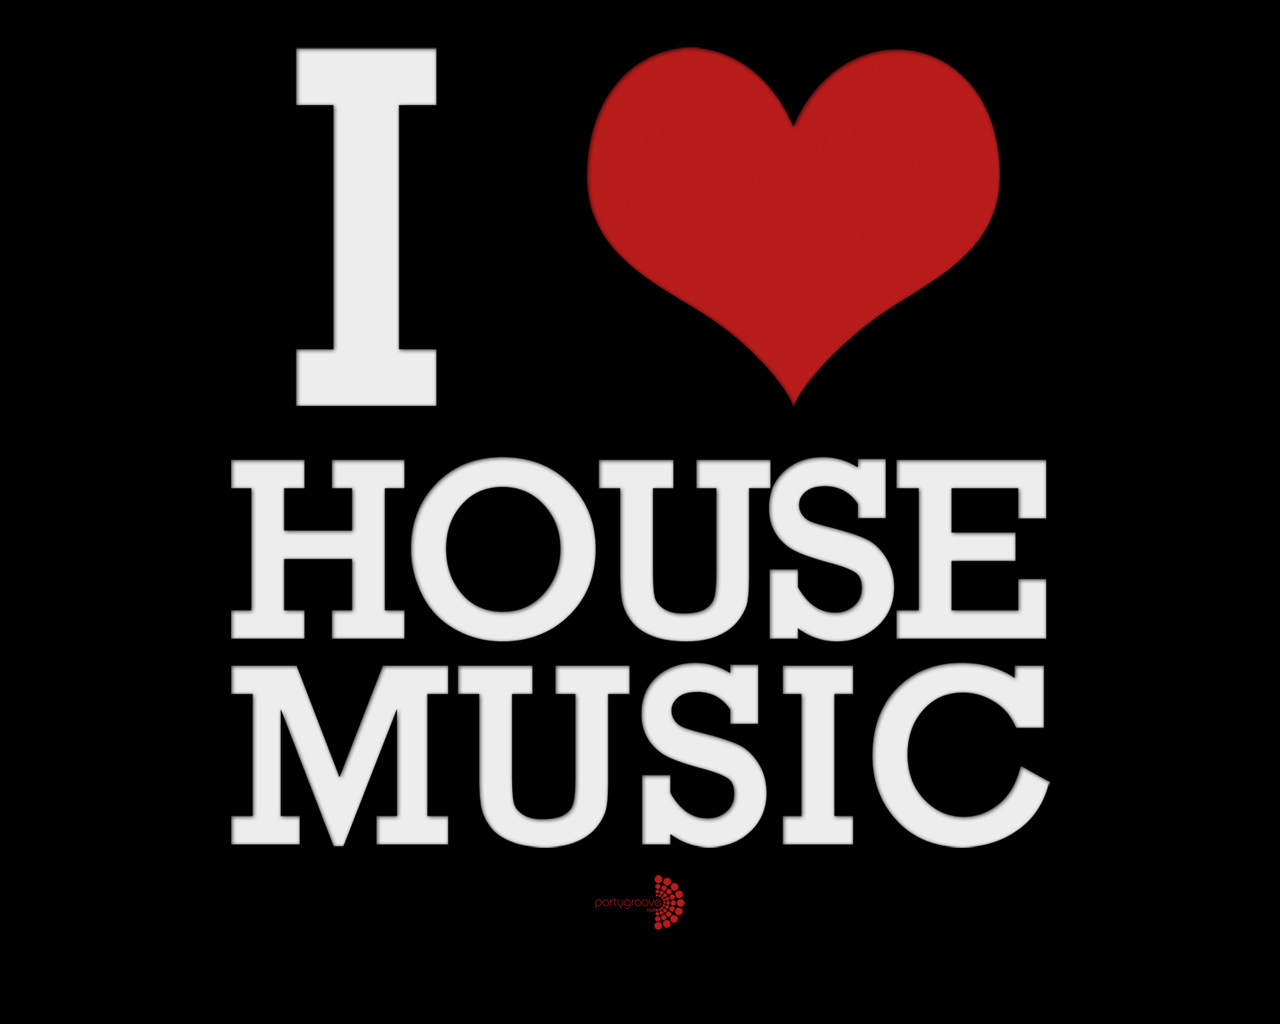 house electro music images